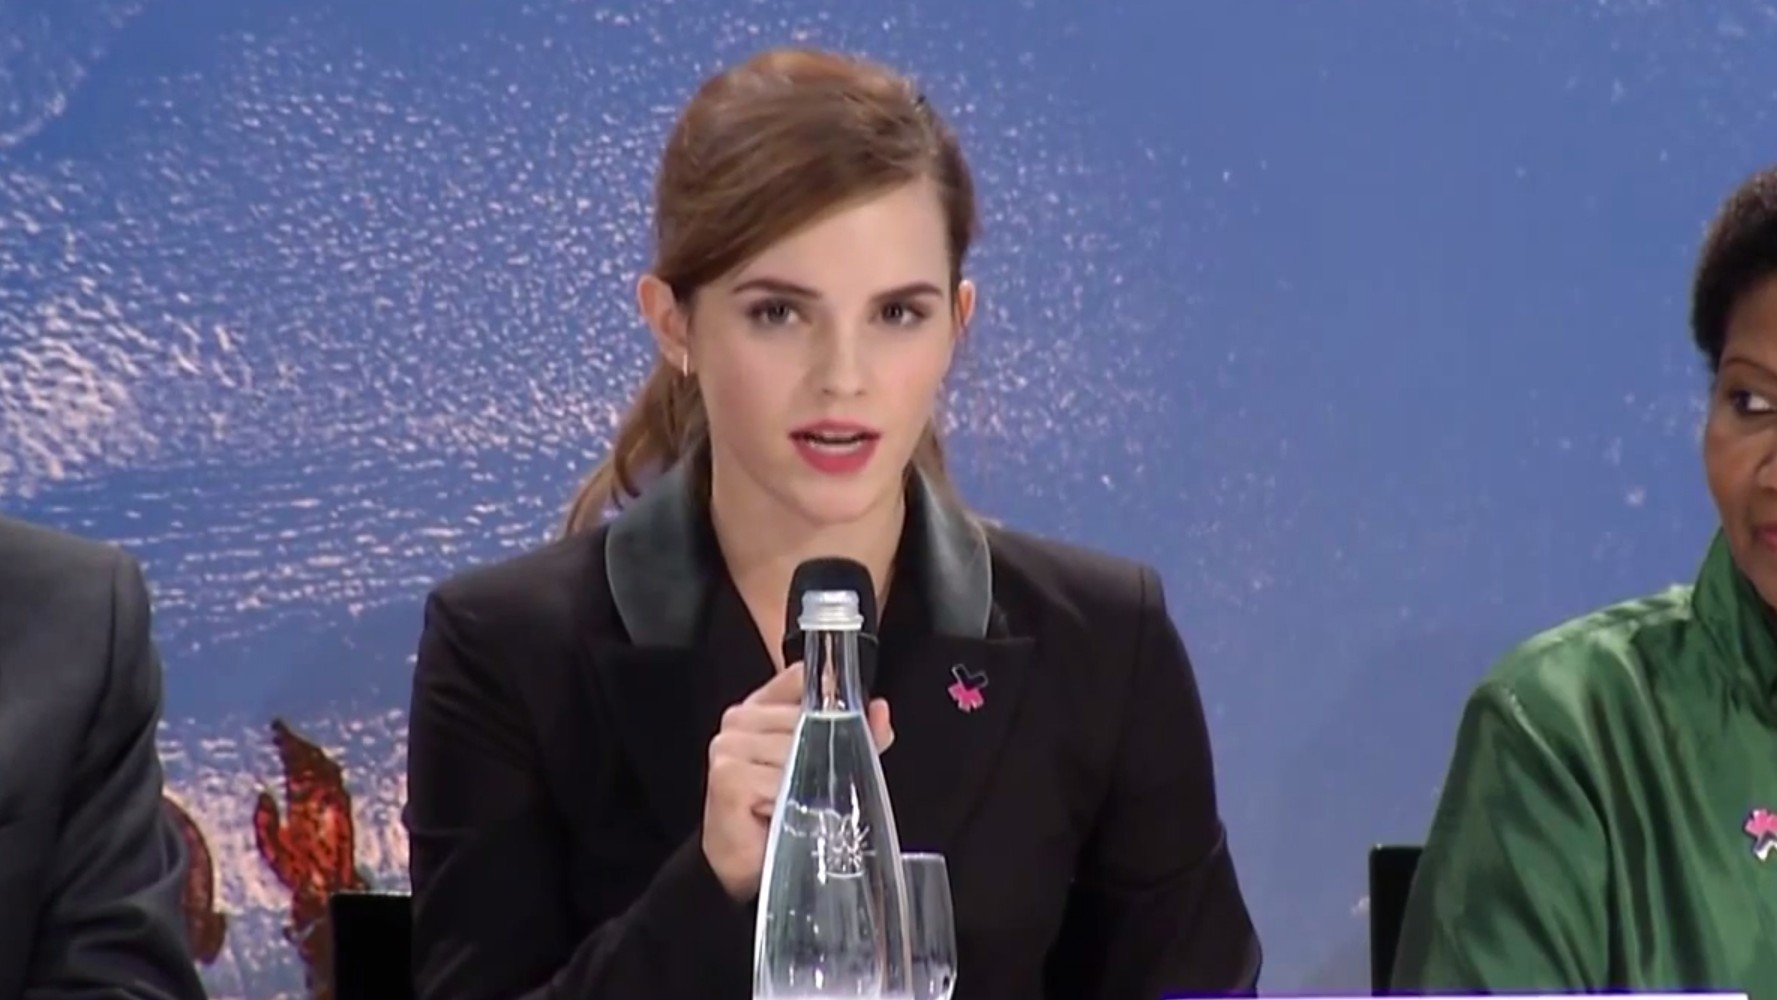 ​emma watson takes #heforshe campaign to the next level